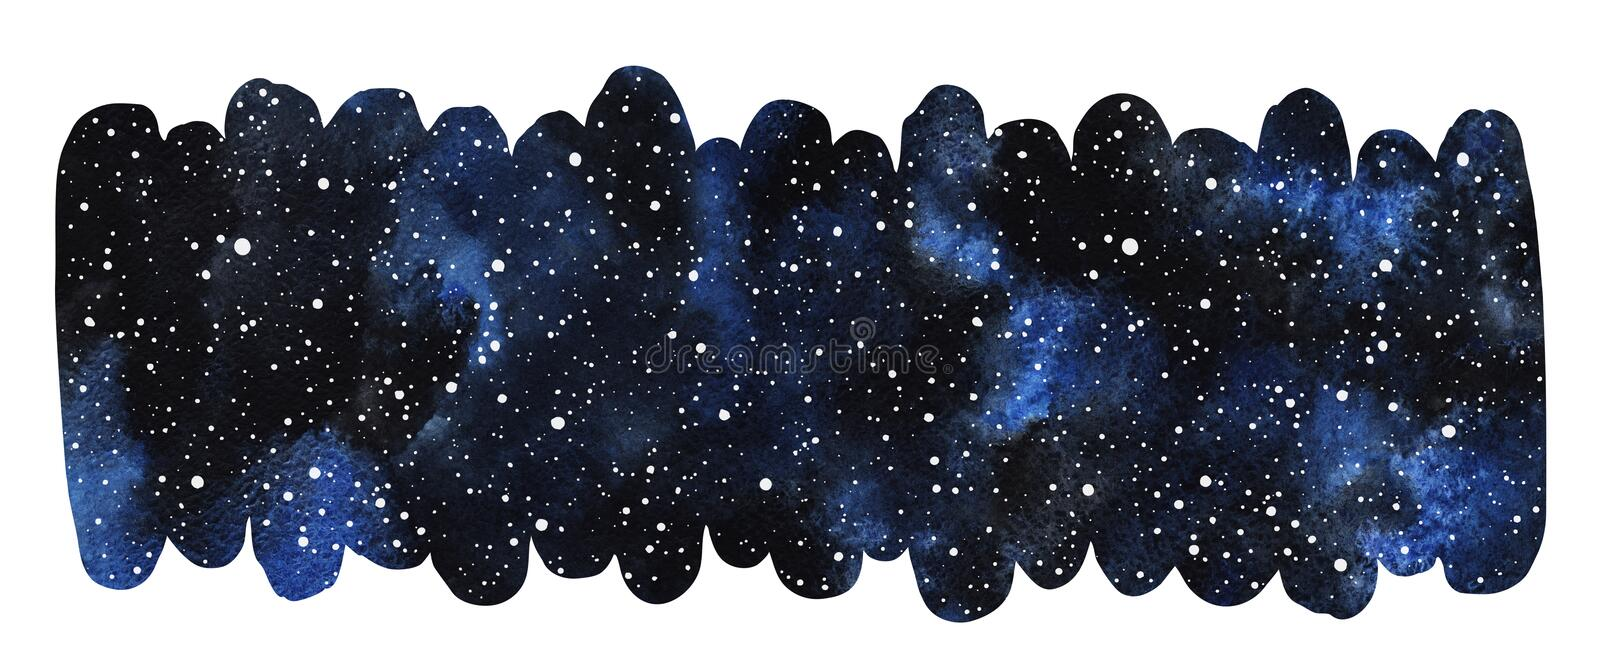 Cosmic, cosmos, space elongated watercolor background royalty free illustration